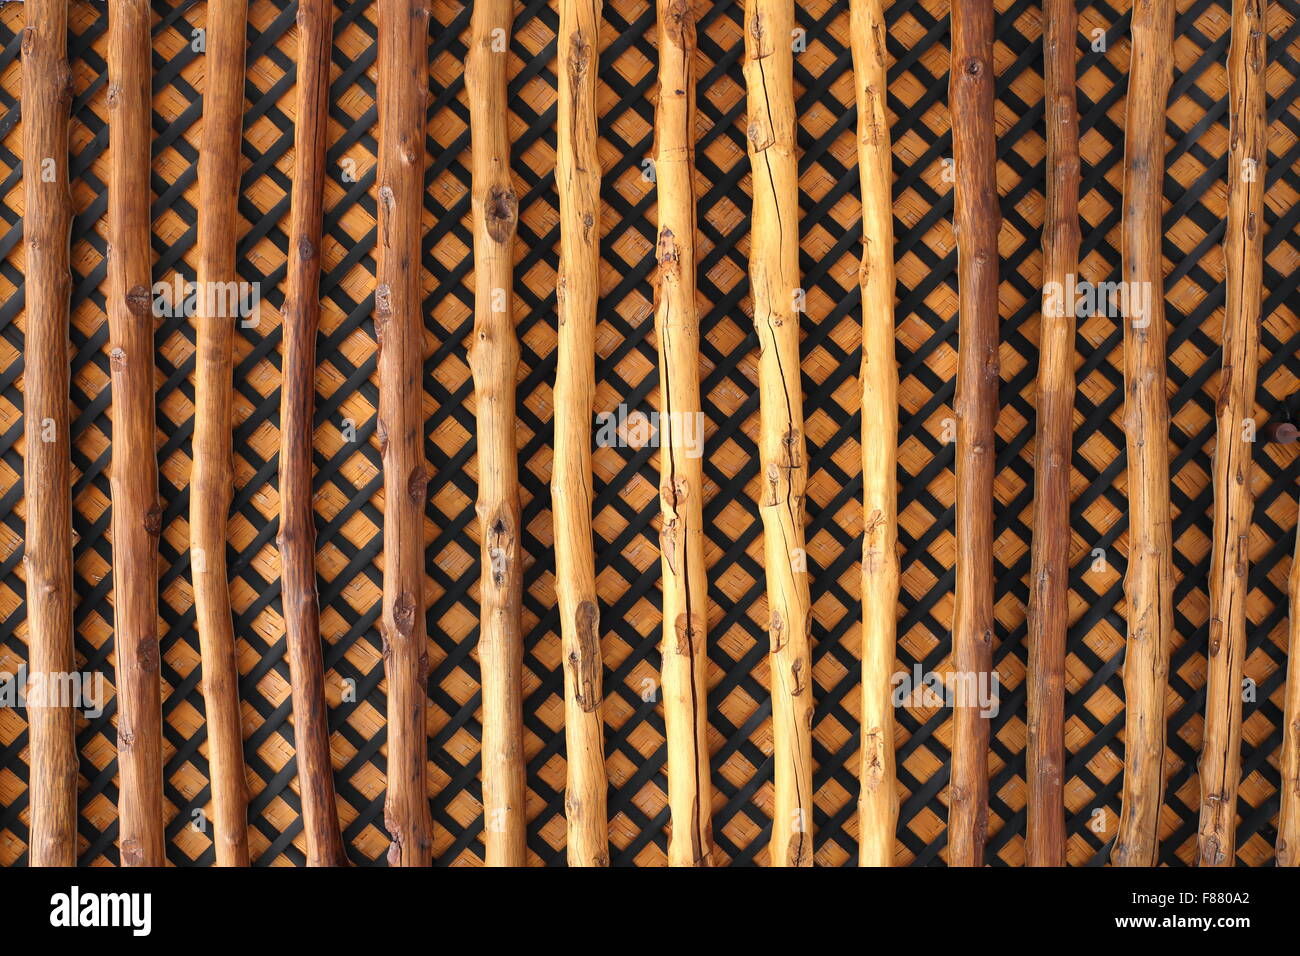 Ceiling made out of palm trunk beams with plaited palm fronds and matting behind, Khalaf House, Manama, Kingdom - Stock Image